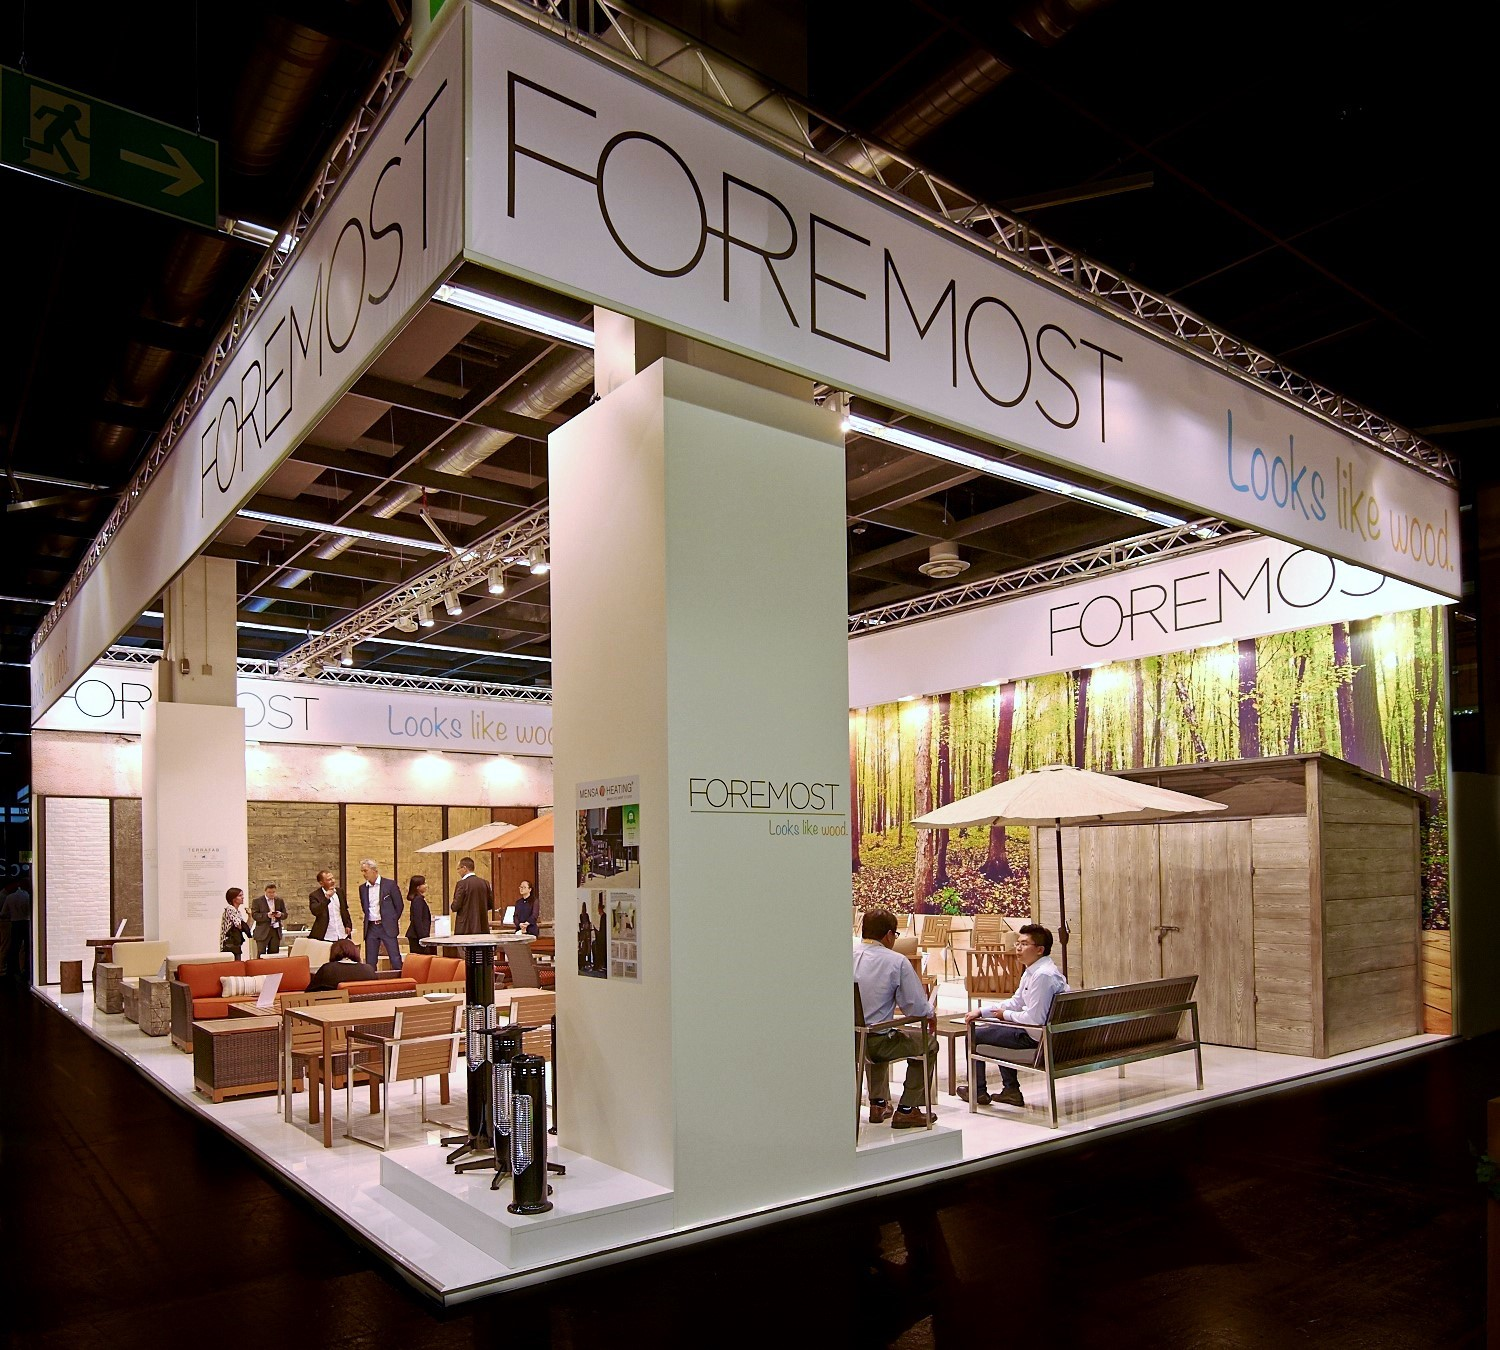 Foremost @ Spoga/Gafa 2015 in Köln